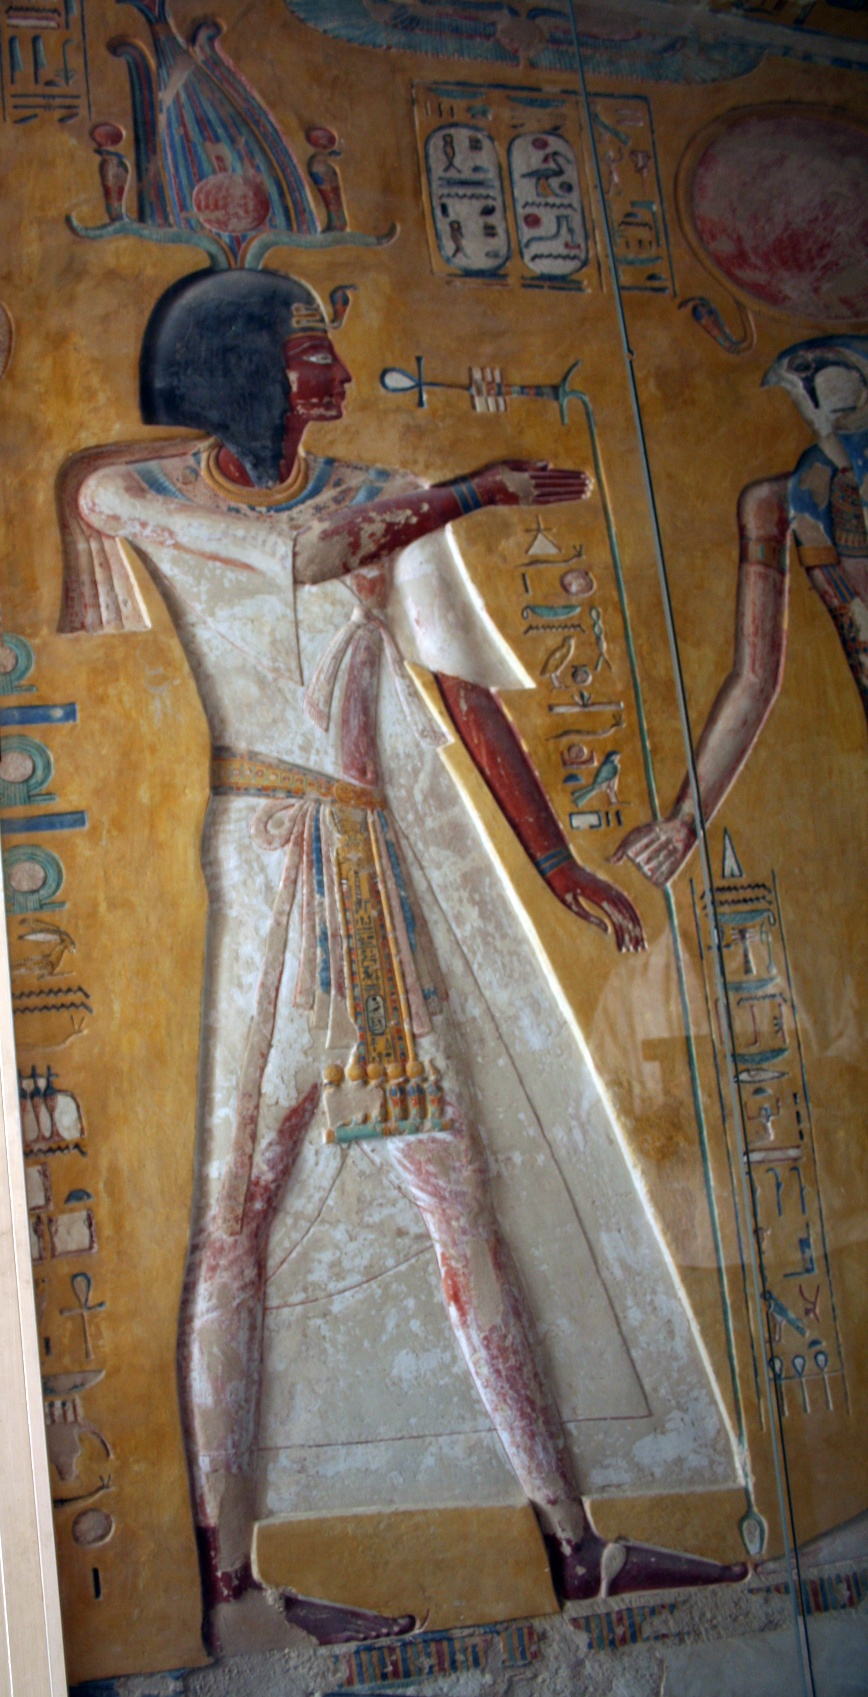 ancient egypt and education essay Egypt: ancient egypt education and learning, from the series of life of ancient egyptians.